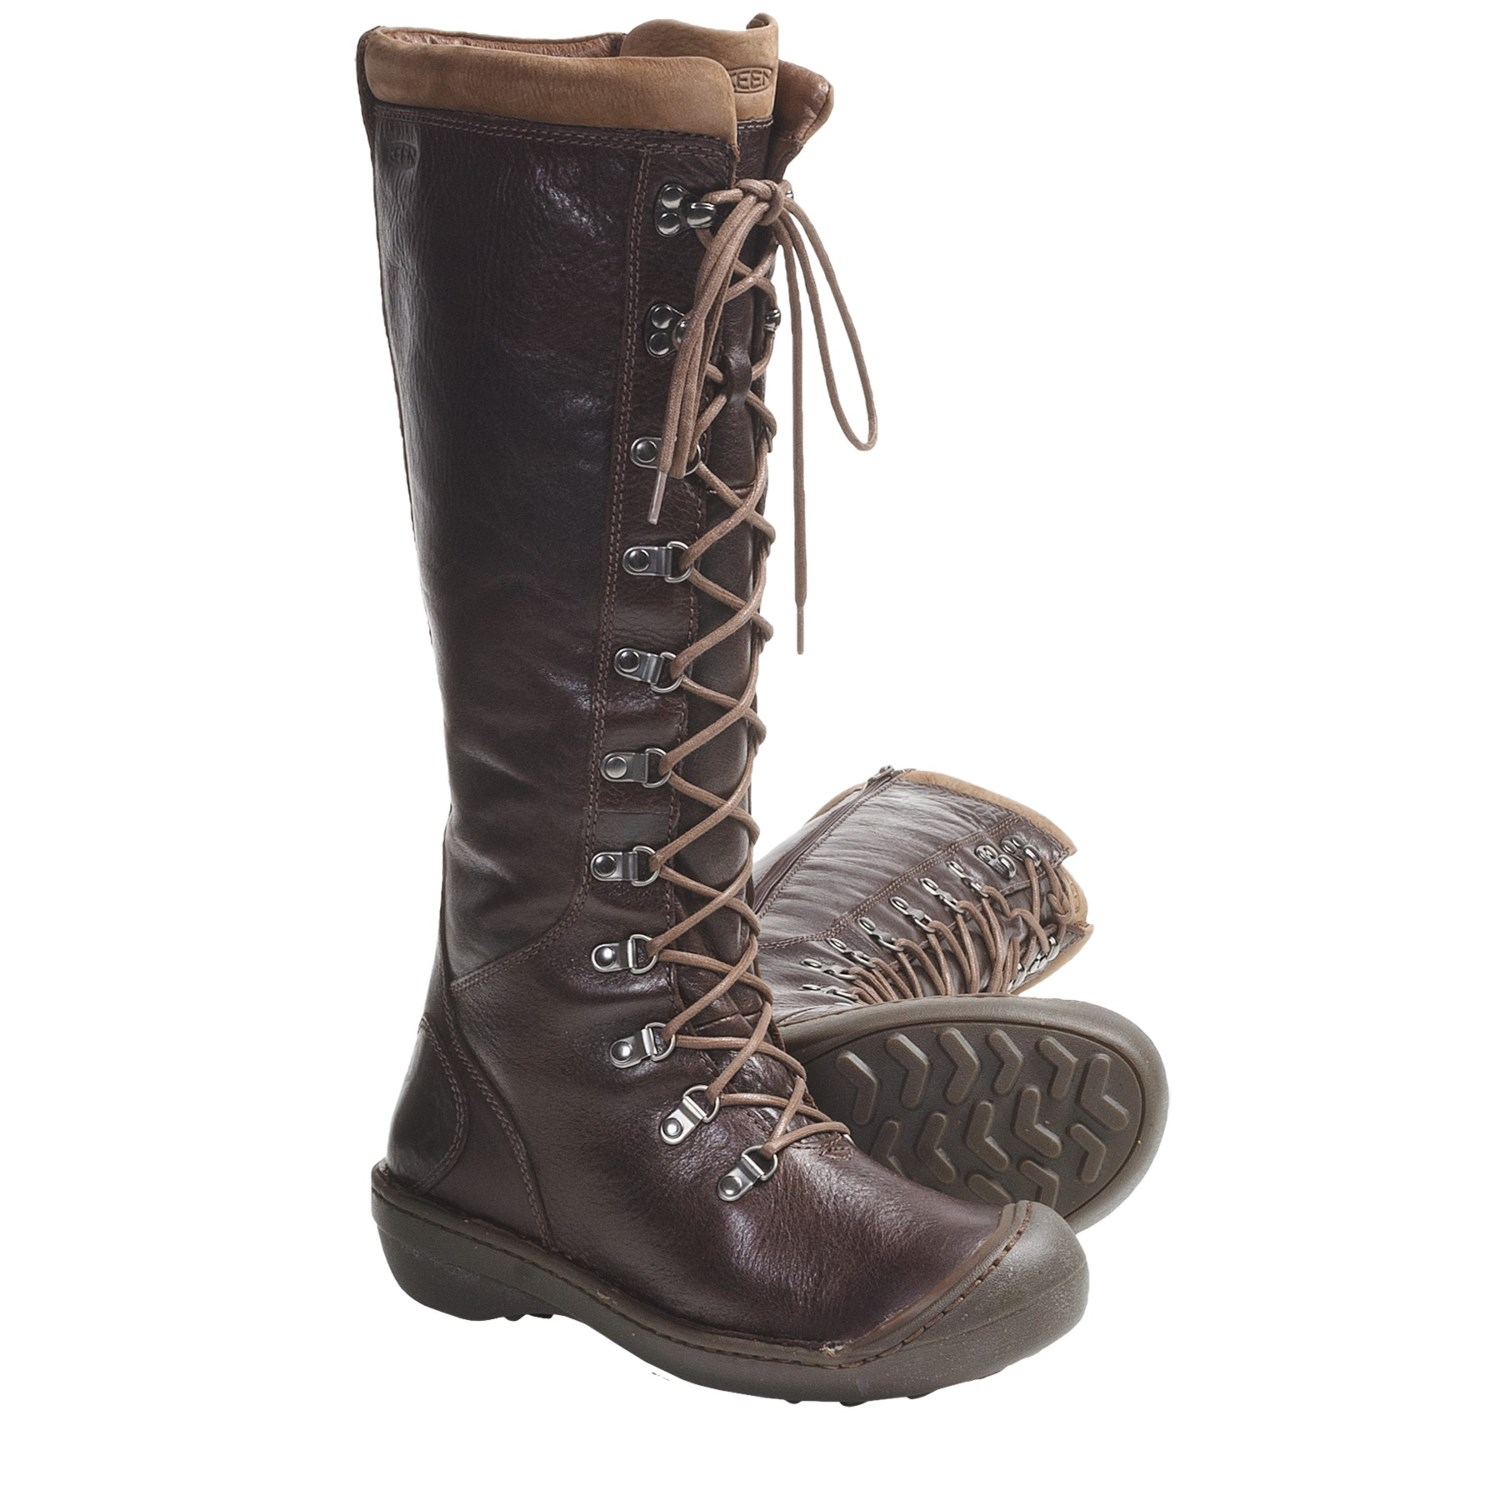 Keen clara high boots leather for women save 63 for Potting soil clearance